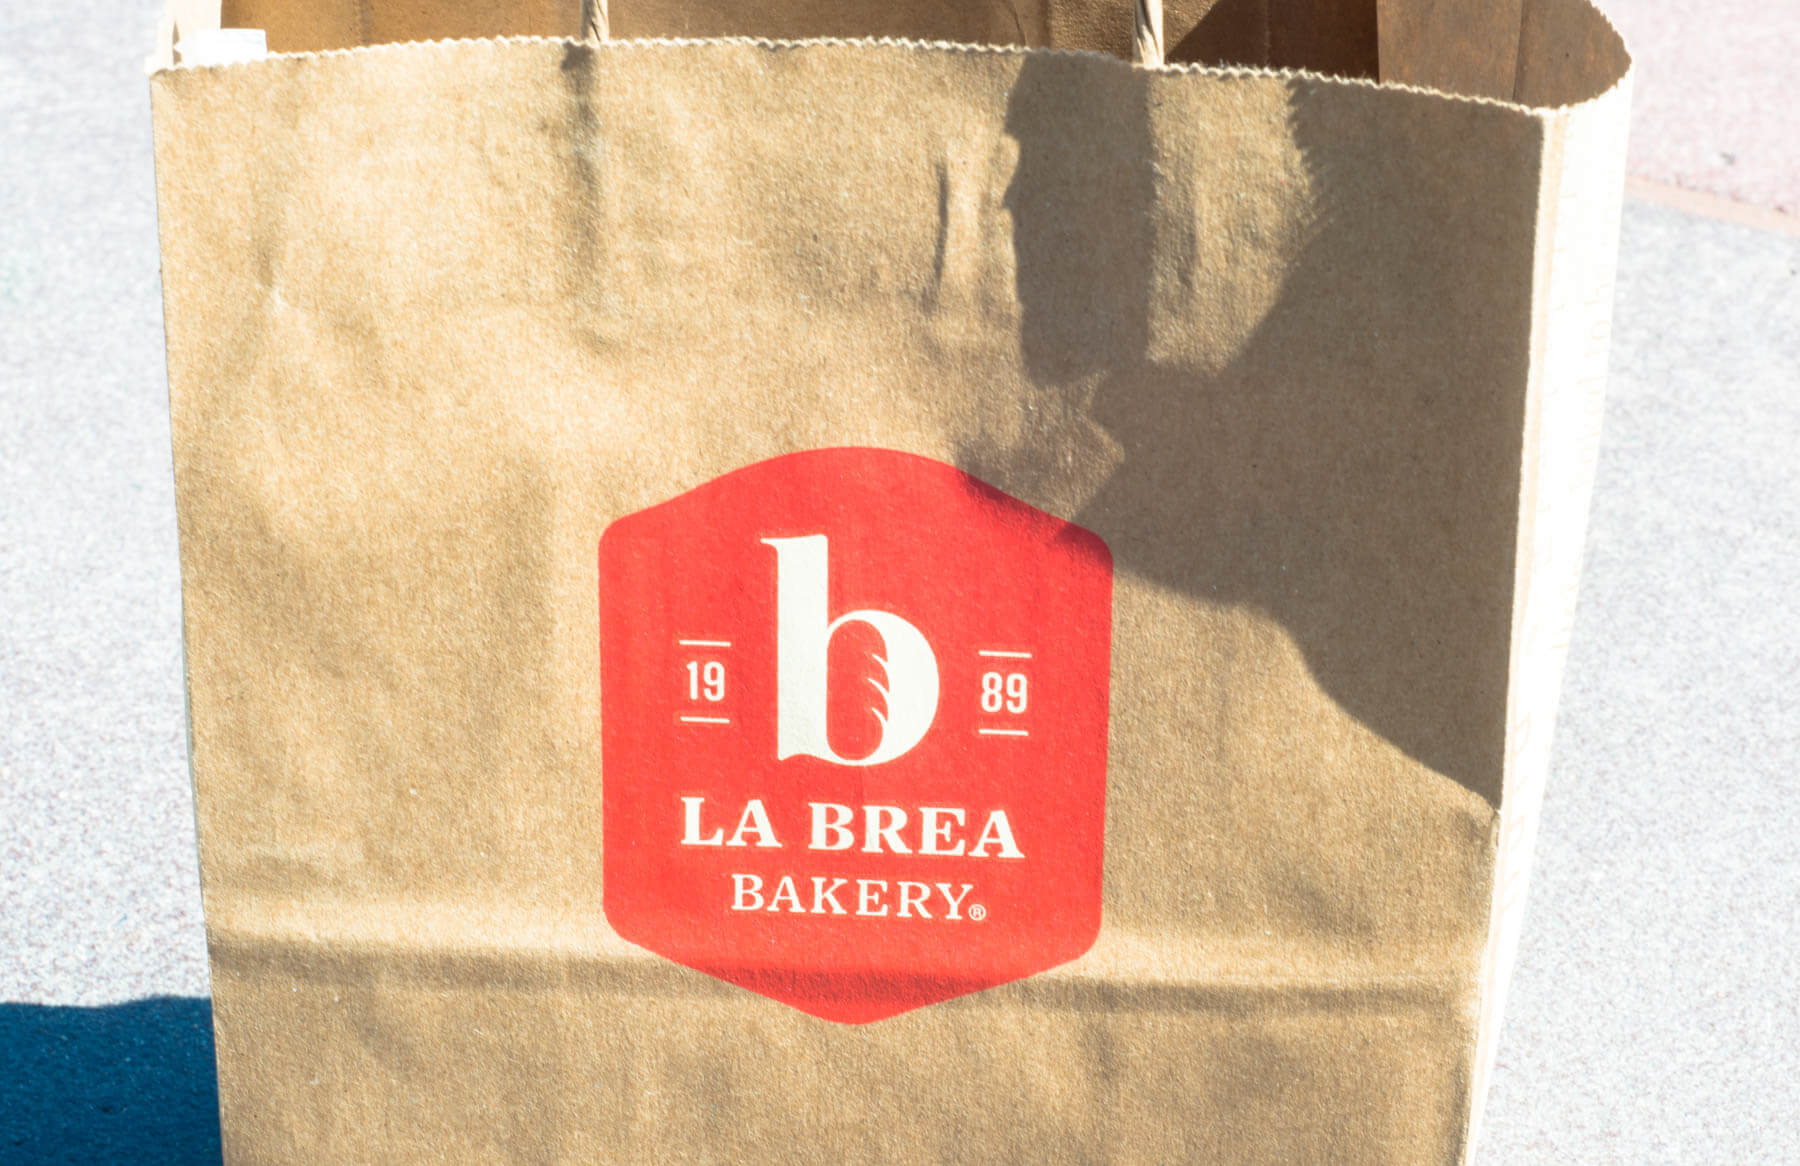 La Brea Bakery Take Out Bag at Downtown Disney | Where to Find Good Coffee at Disneyland